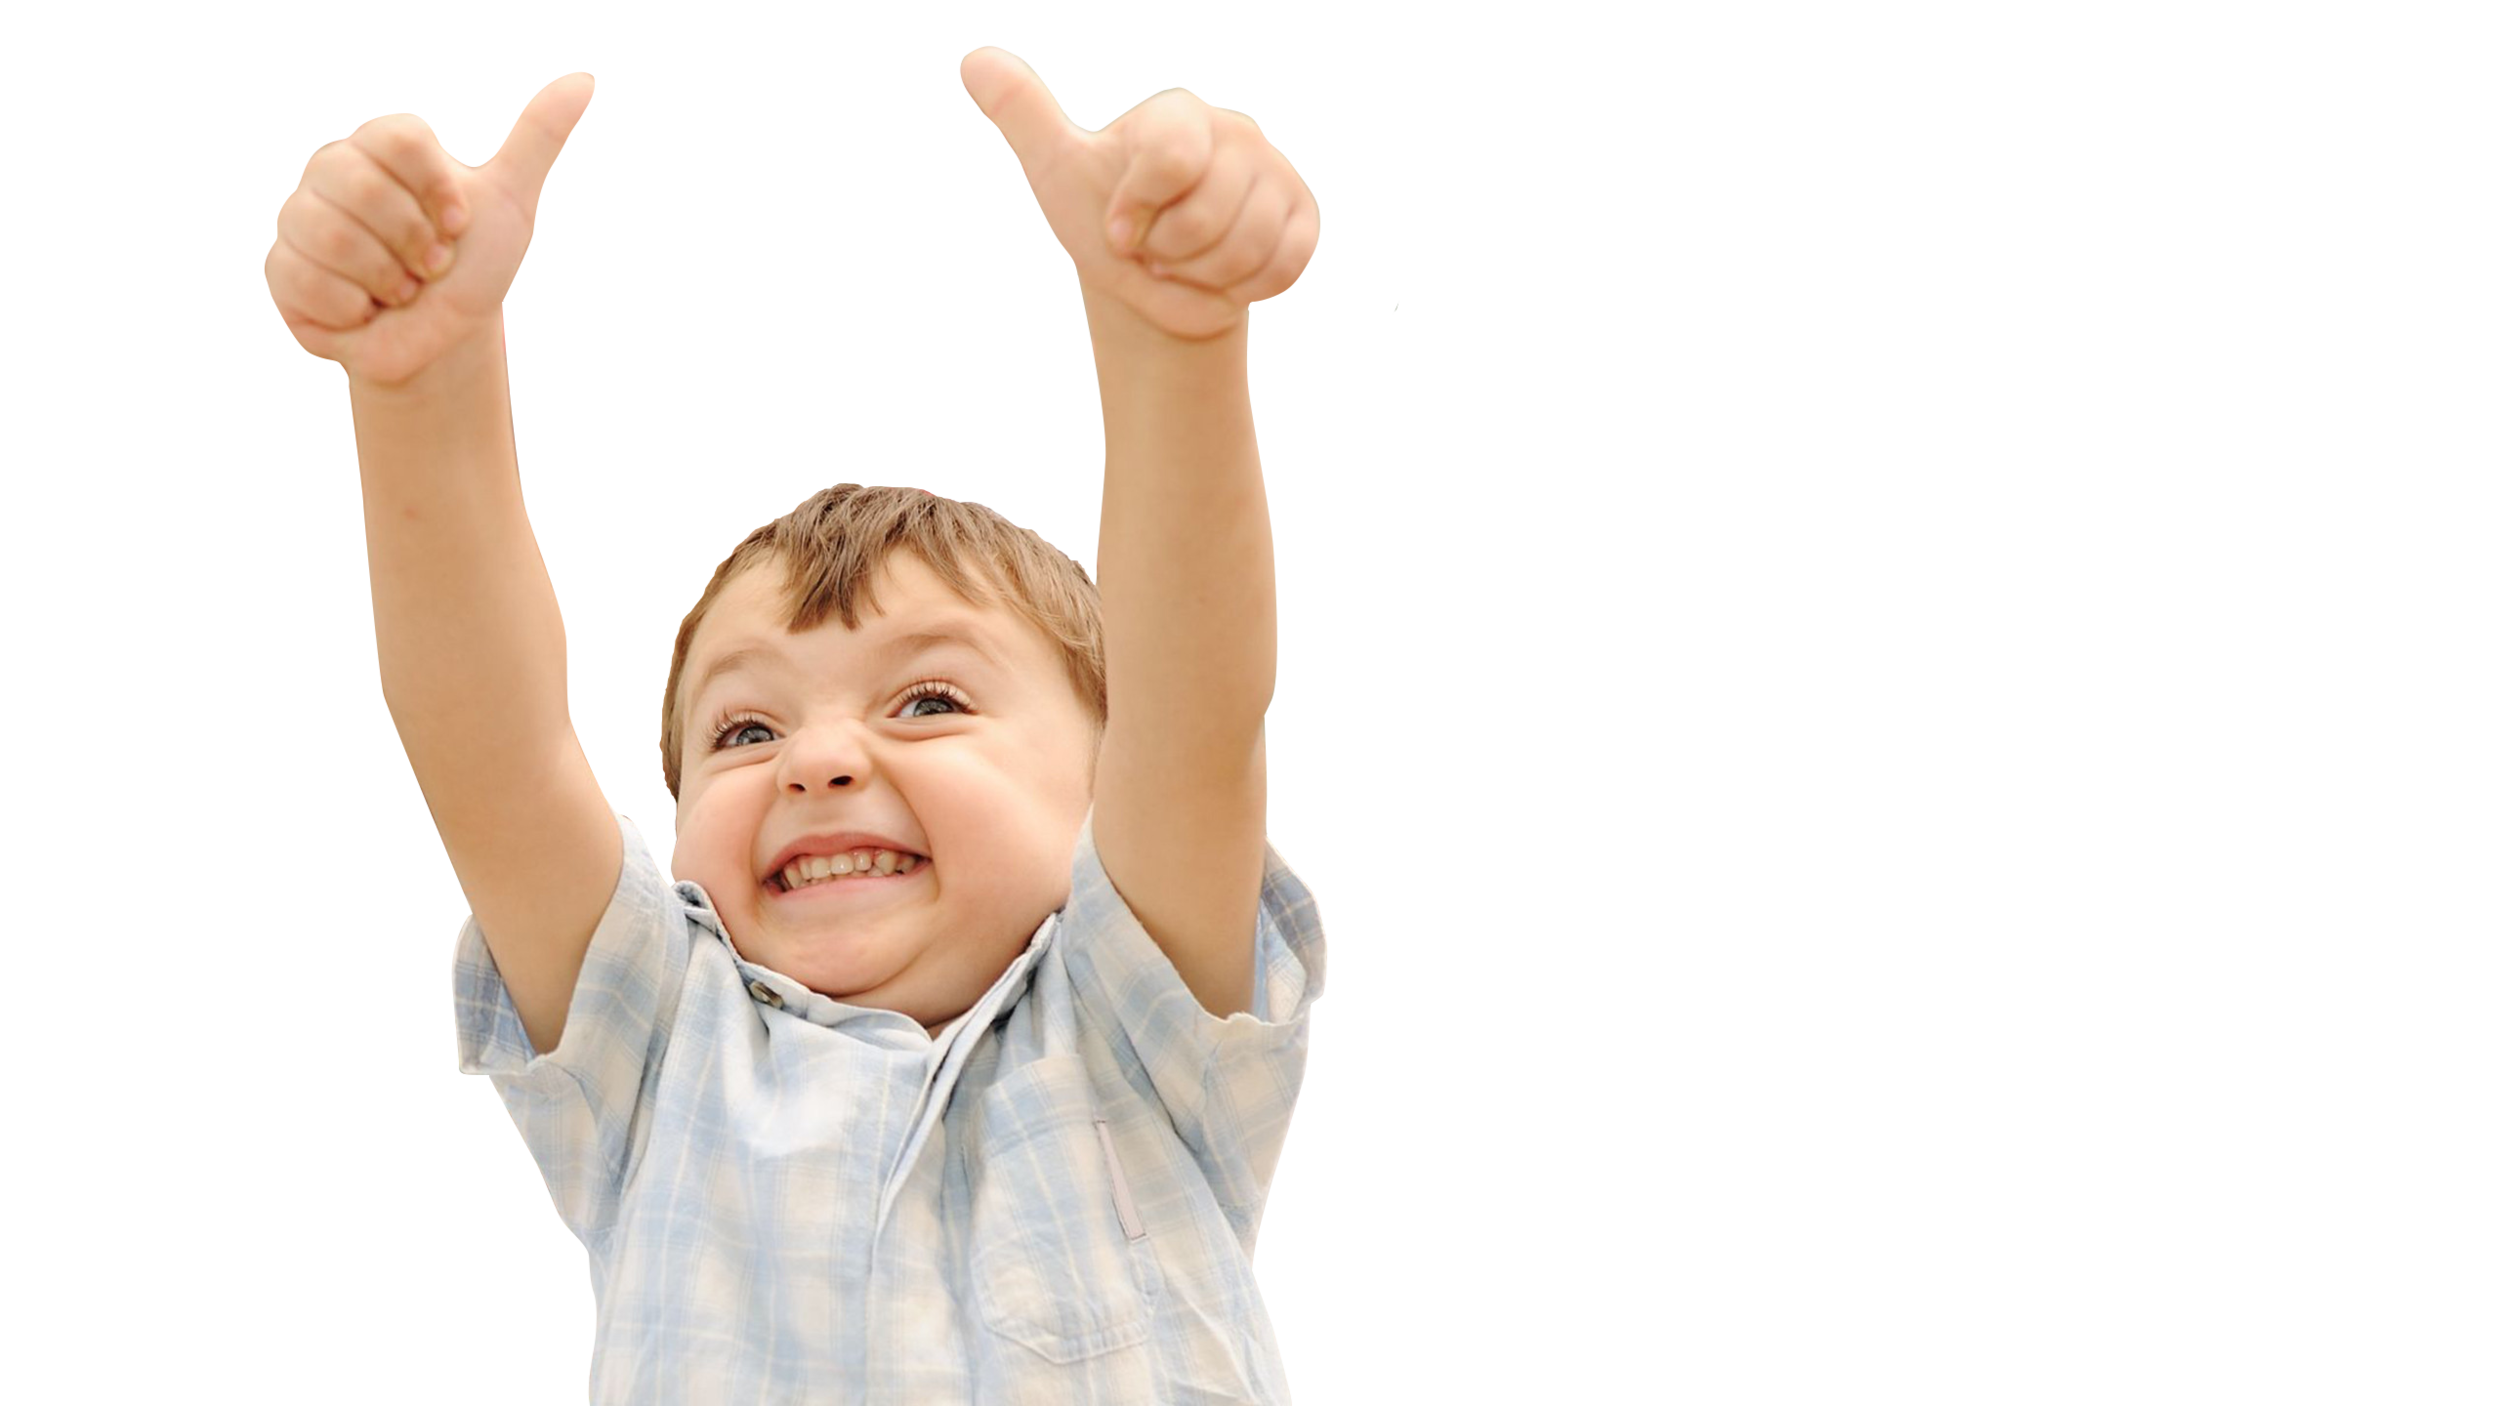 kid thumbs up.png